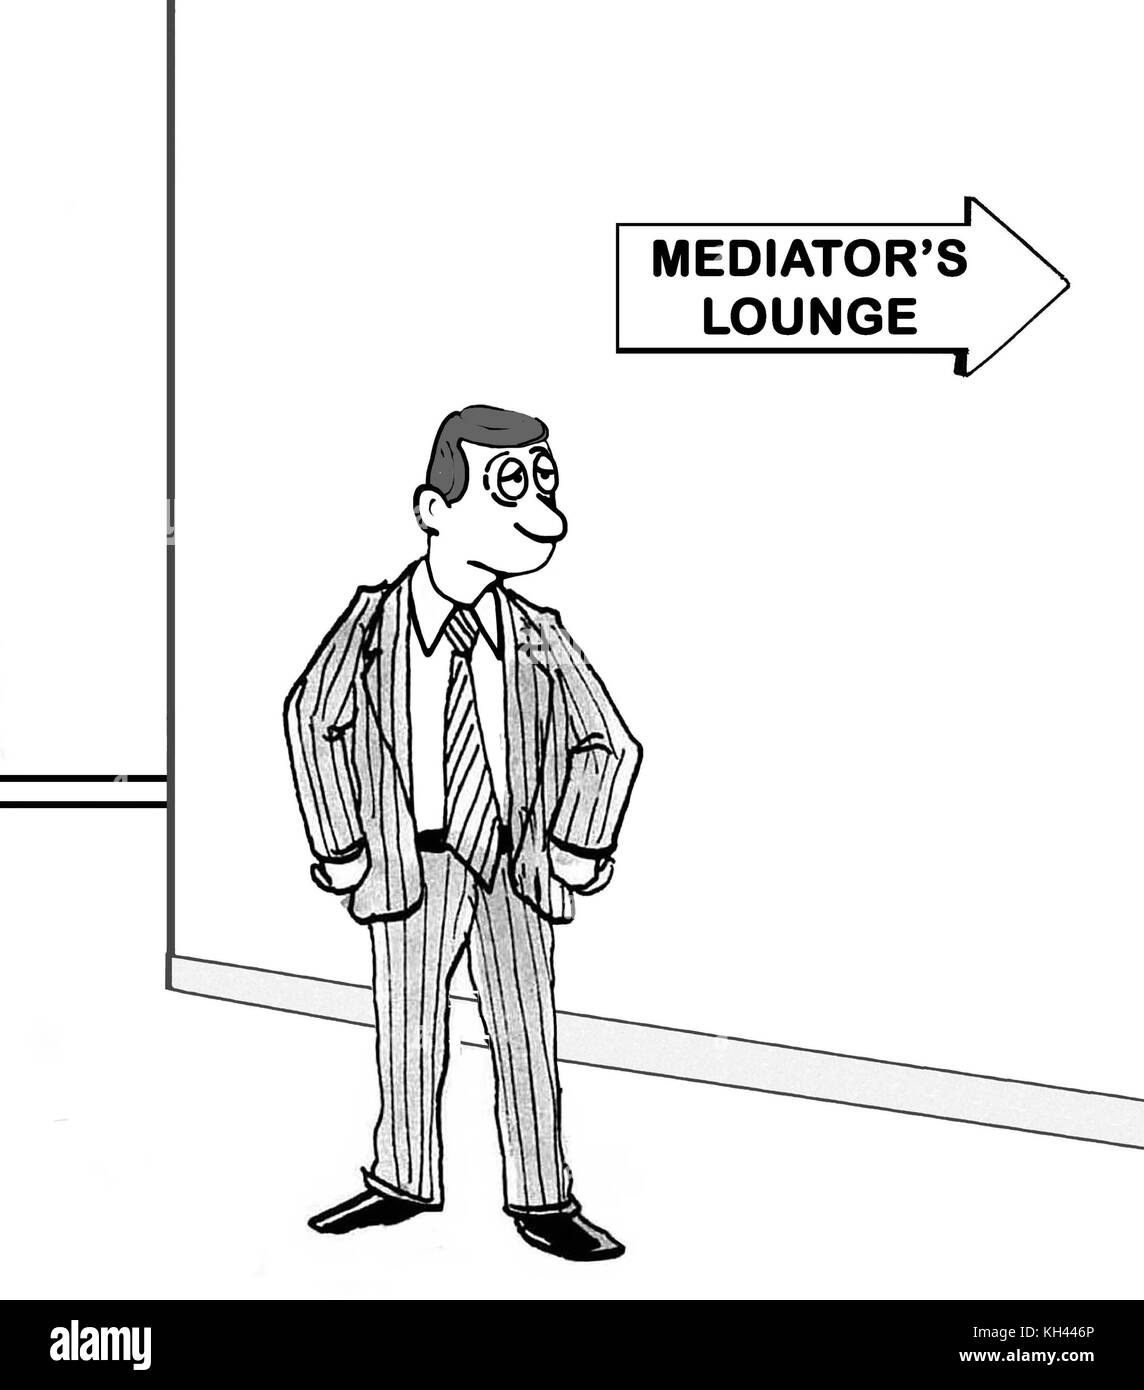 Cartoon showing a tired man headed to the mediator's lounge. Stock Photo